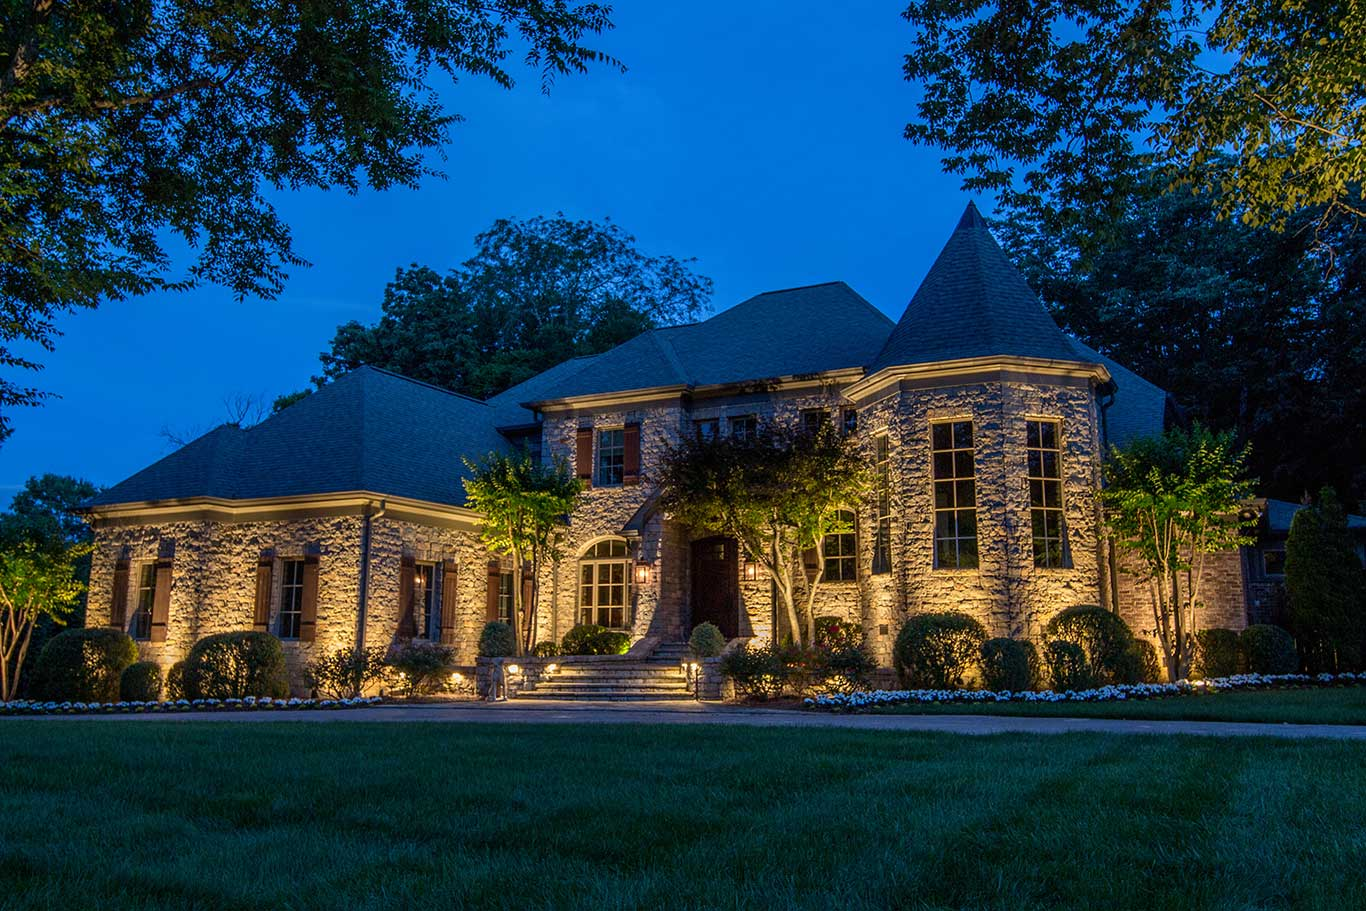 Nashville home with outdoor lighting